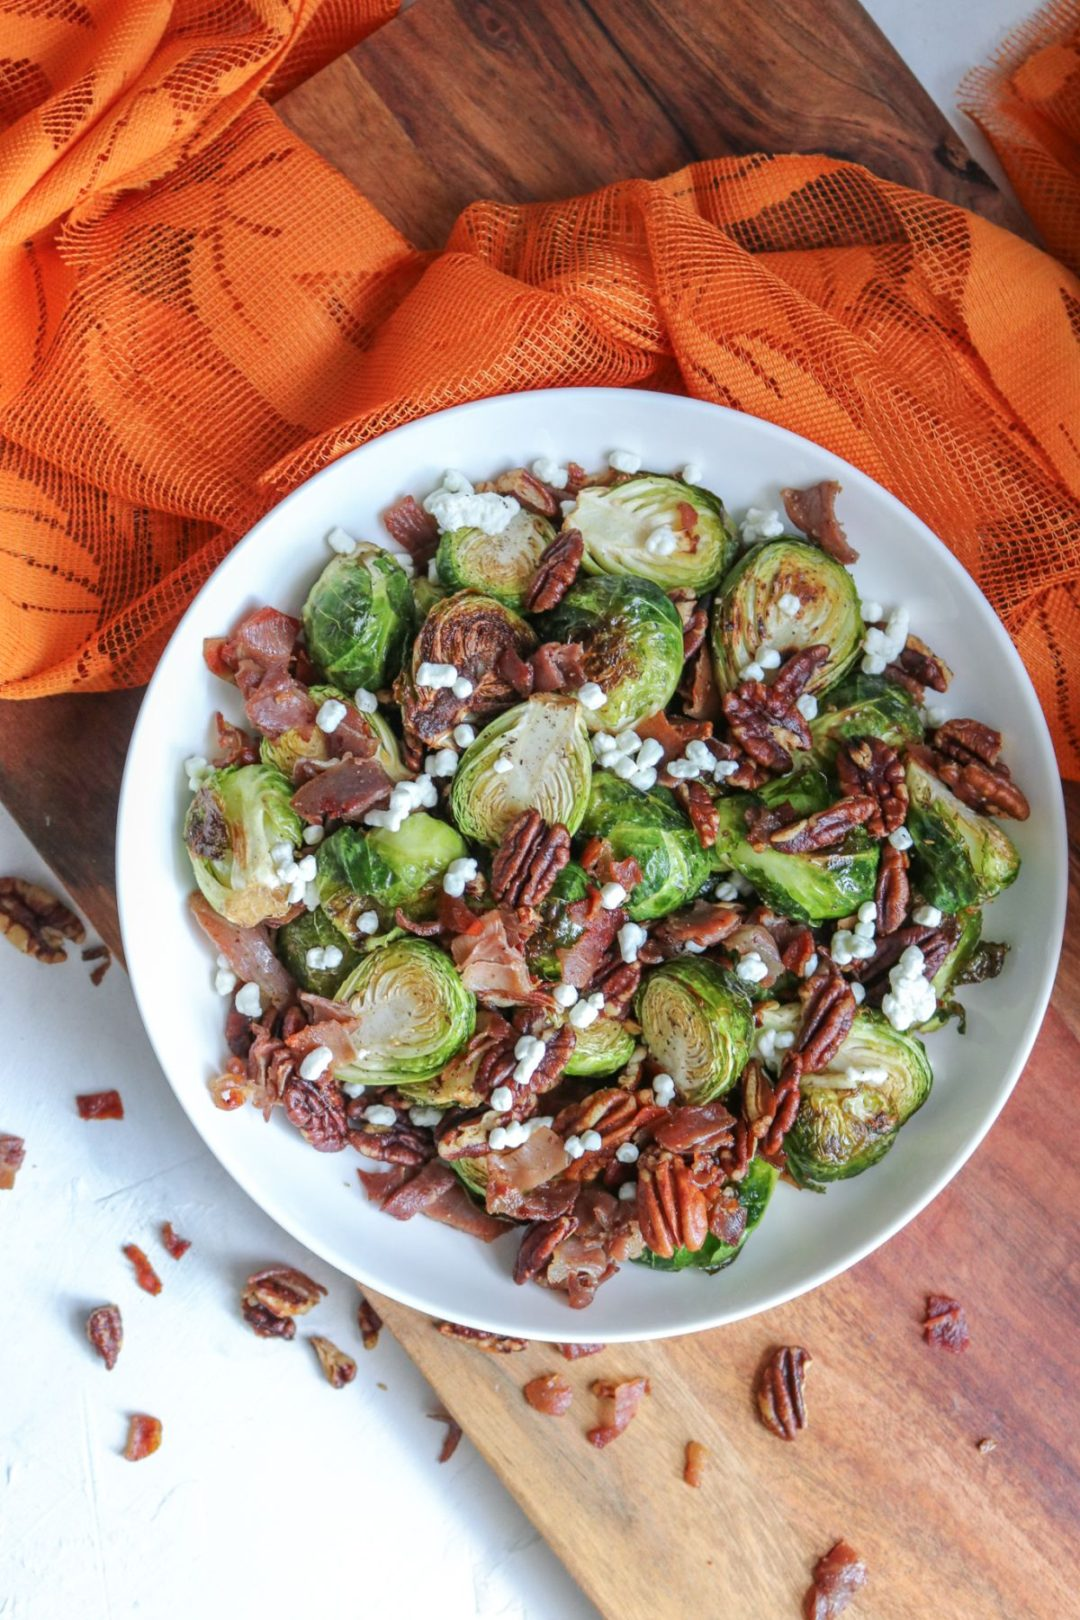 Roasted Brussel Sprouts with Crispy Prosciutto, Pecans, and Goat Cheese